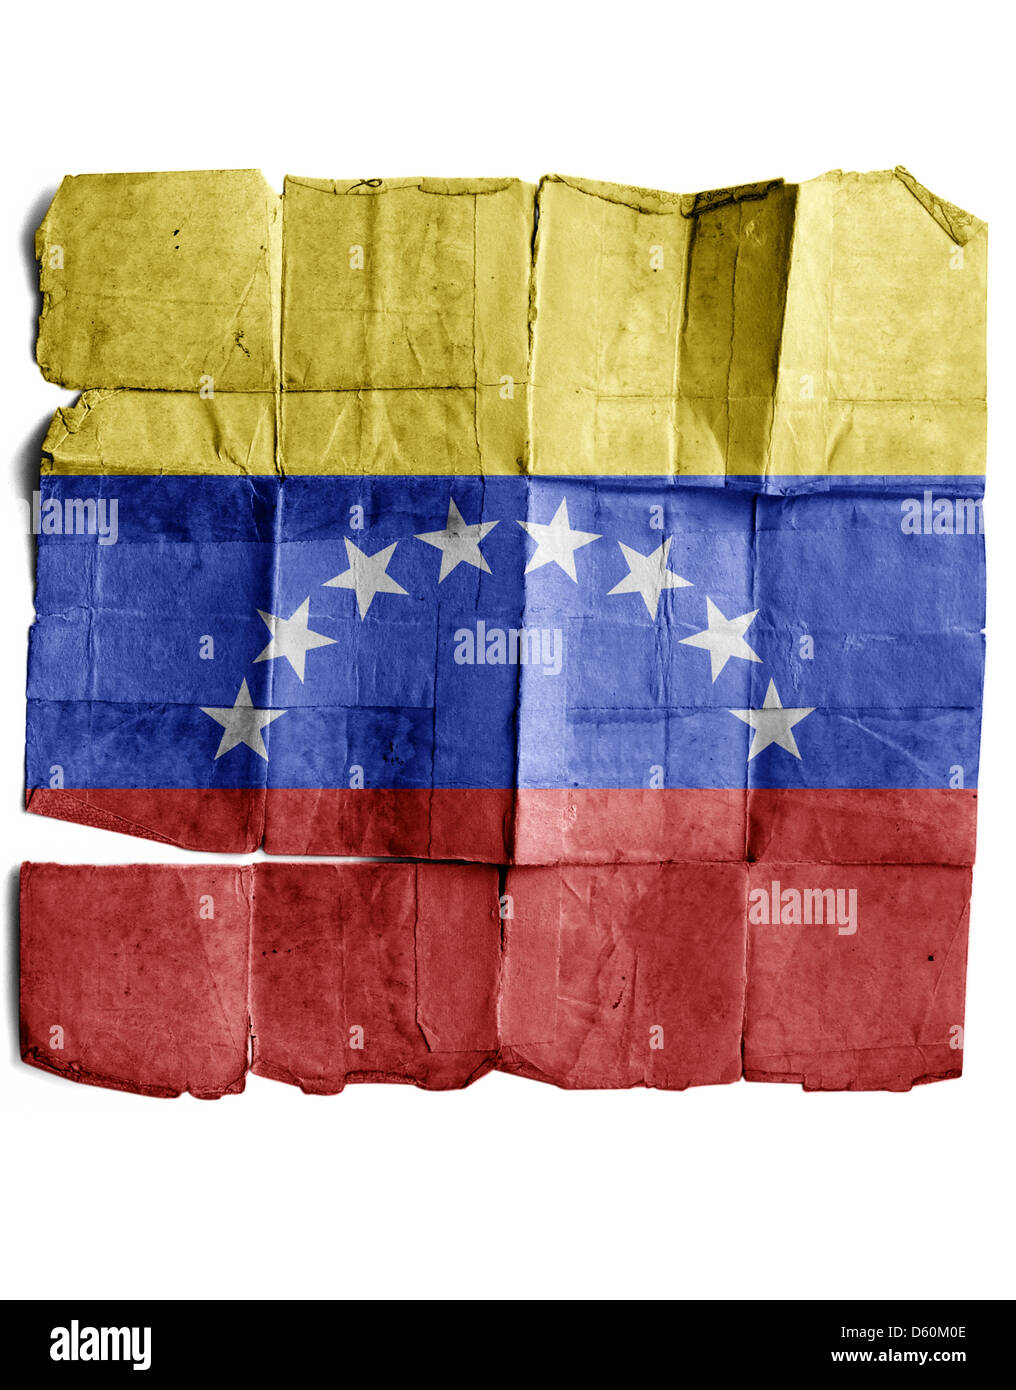 Venezuela Flag on old paper. - Stock Image